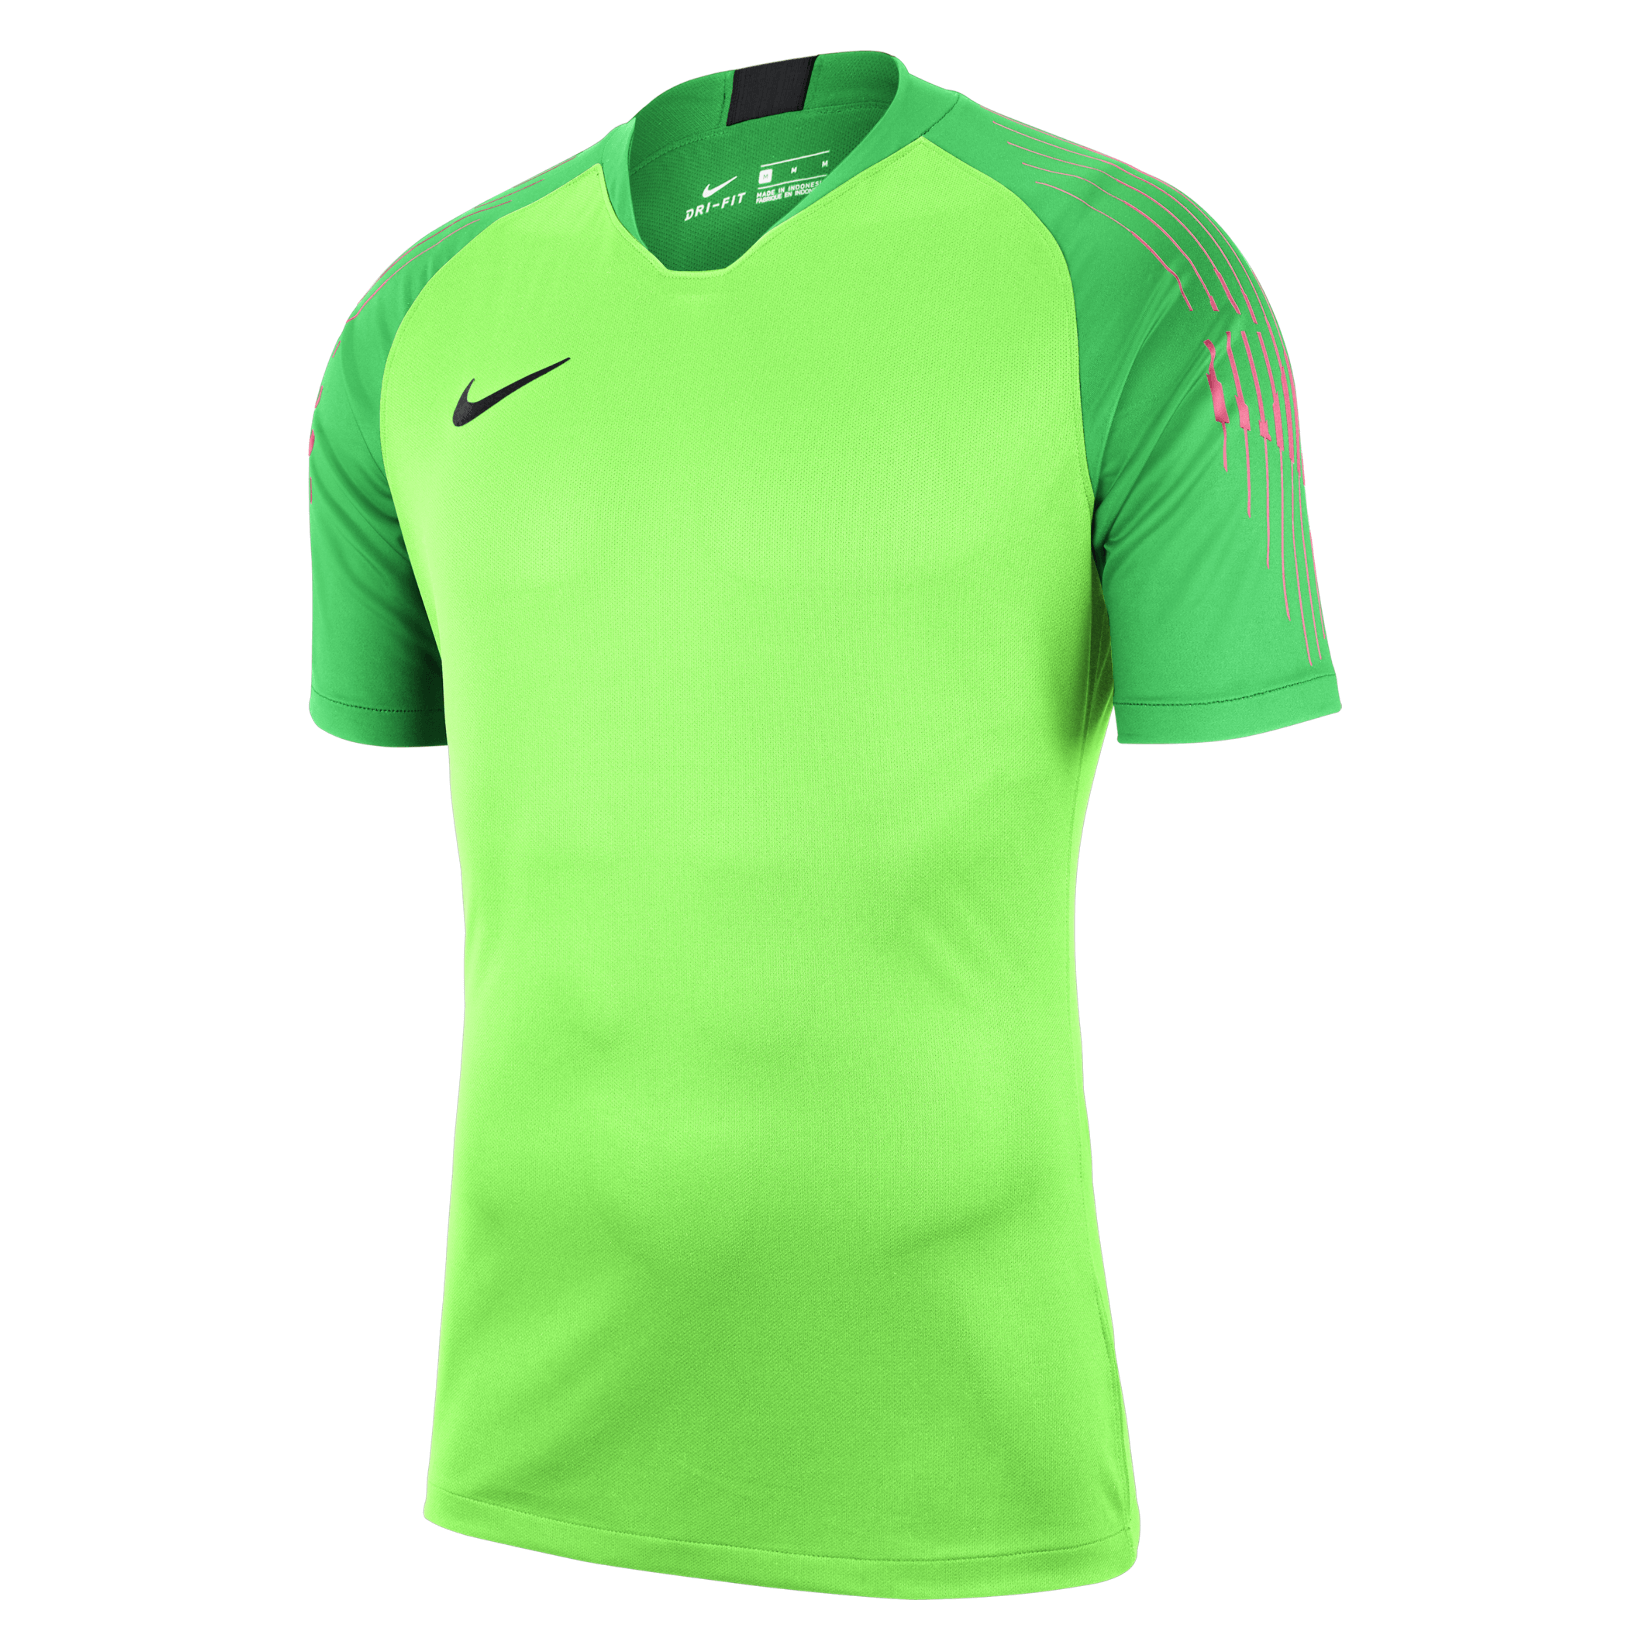 Nike Gardien Short Sleeve Goalkeeper Shirt Green Strike-Green Spark-Black